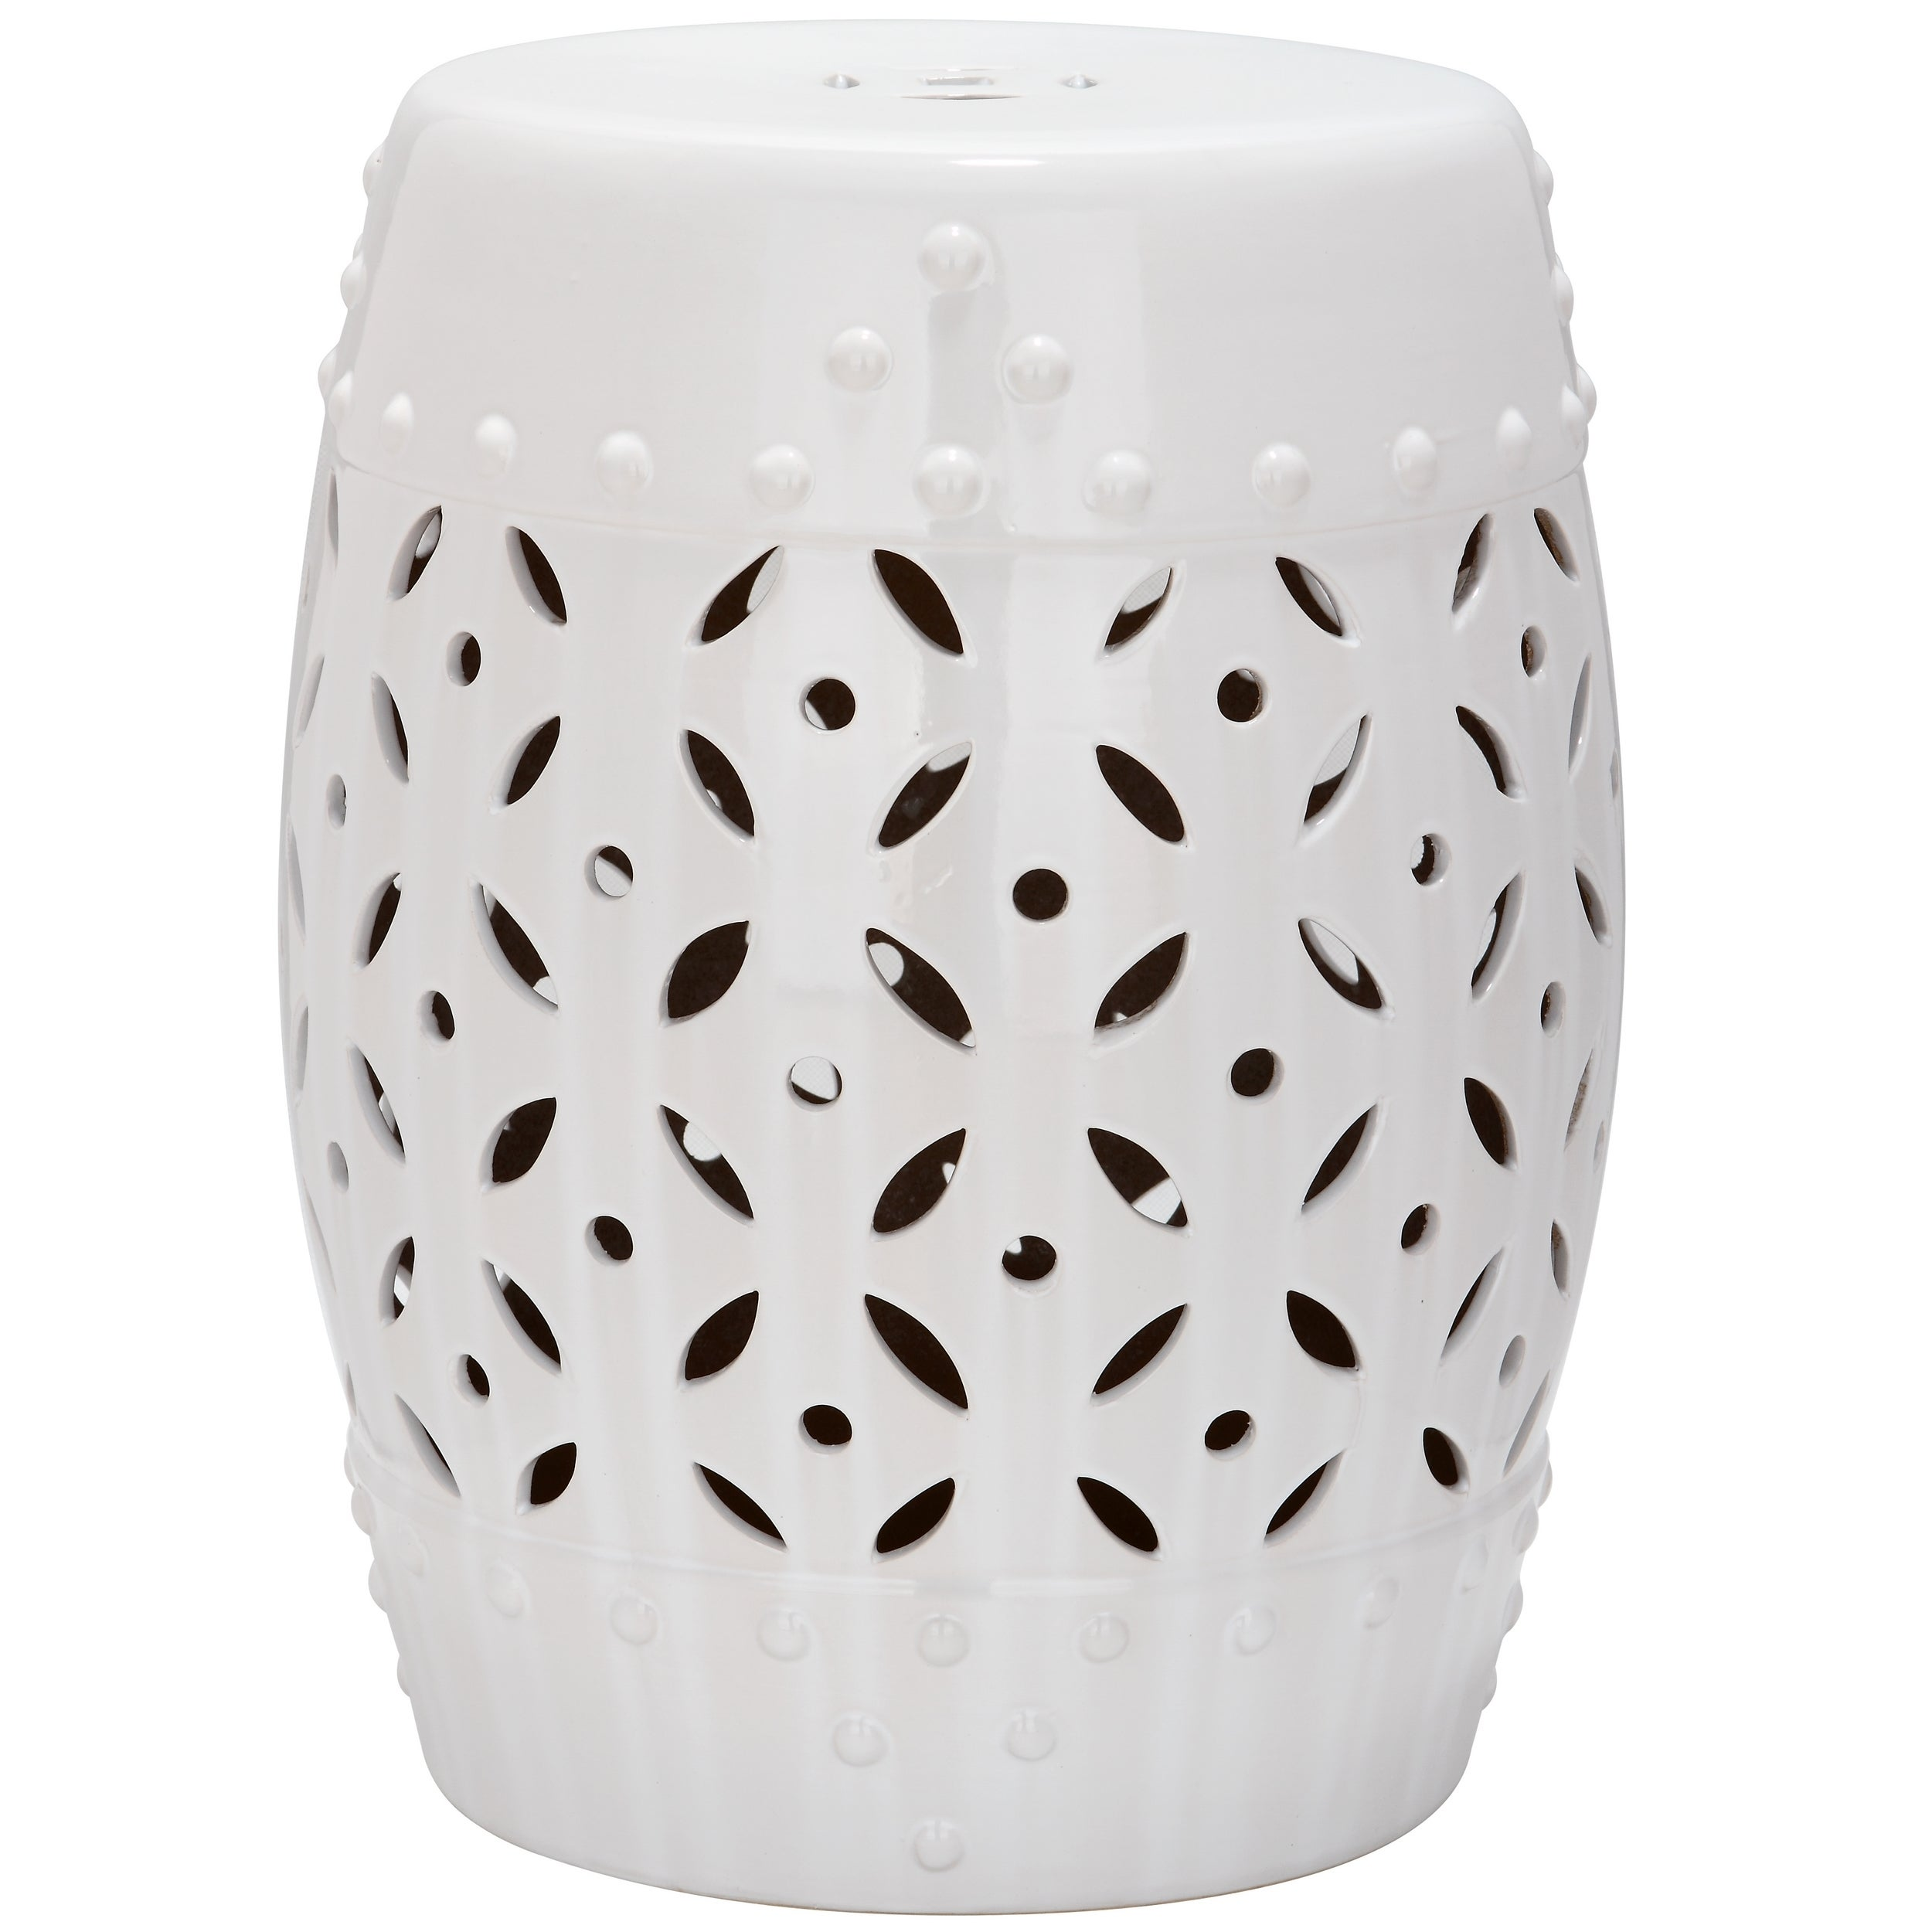 look shop no garden to than free shipping com on stool white stools pin overstock with further